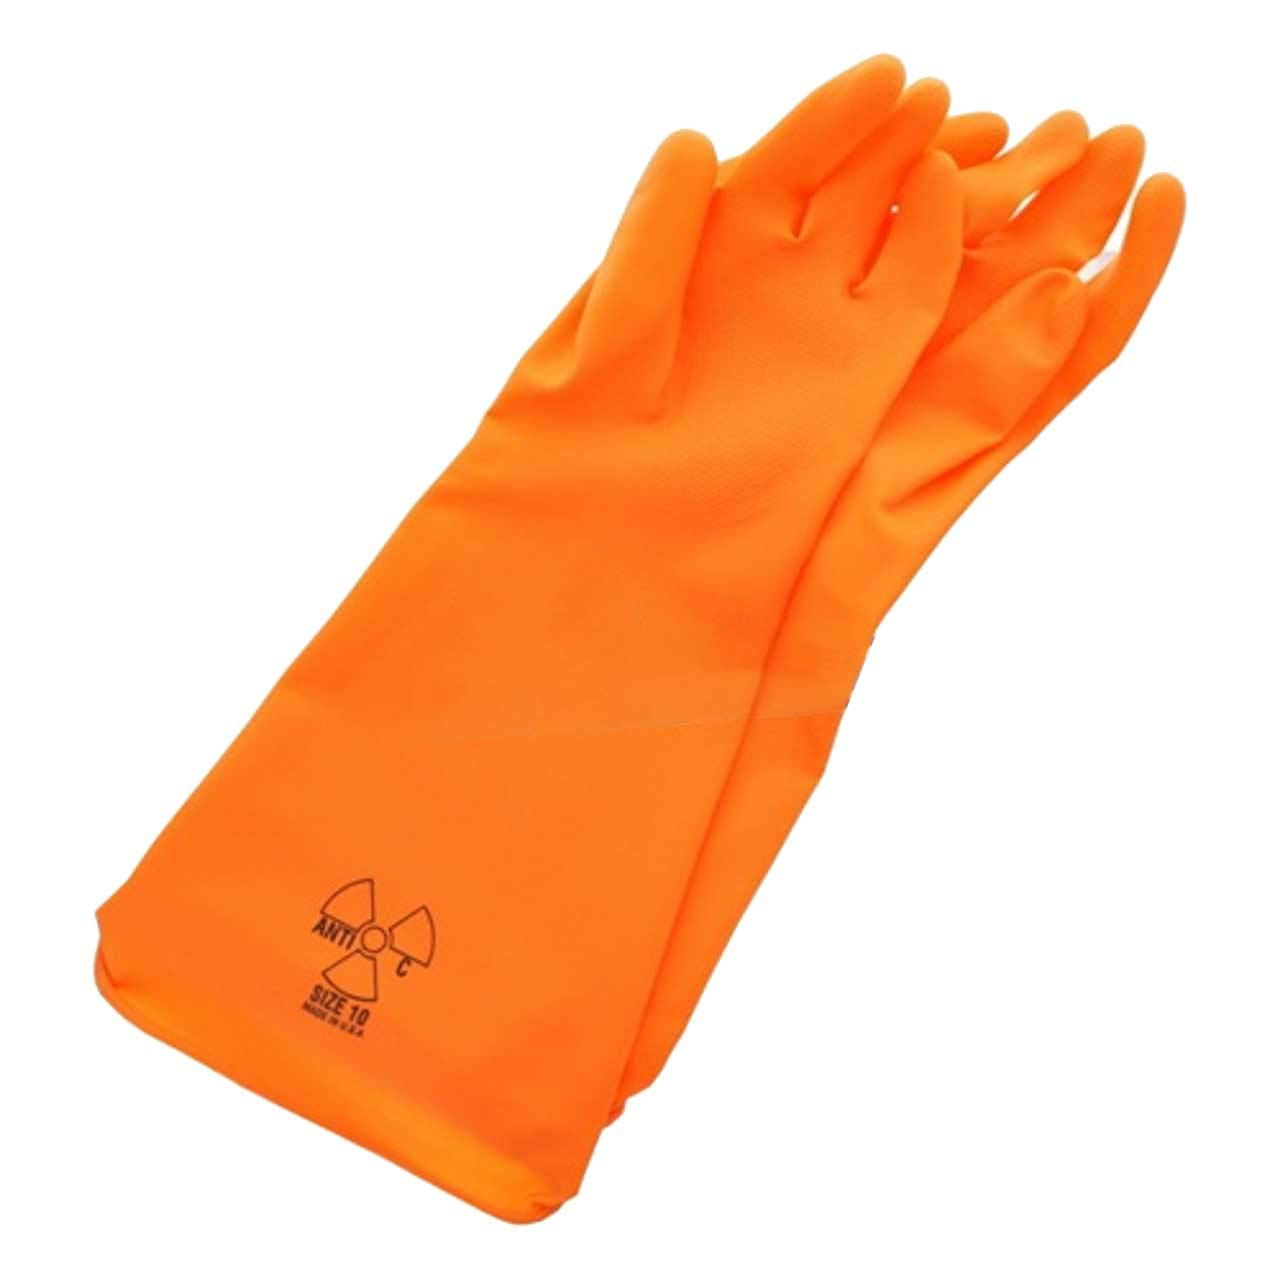 CK PCG Latex Gloves 18'' Size 10 for Purge Chamber